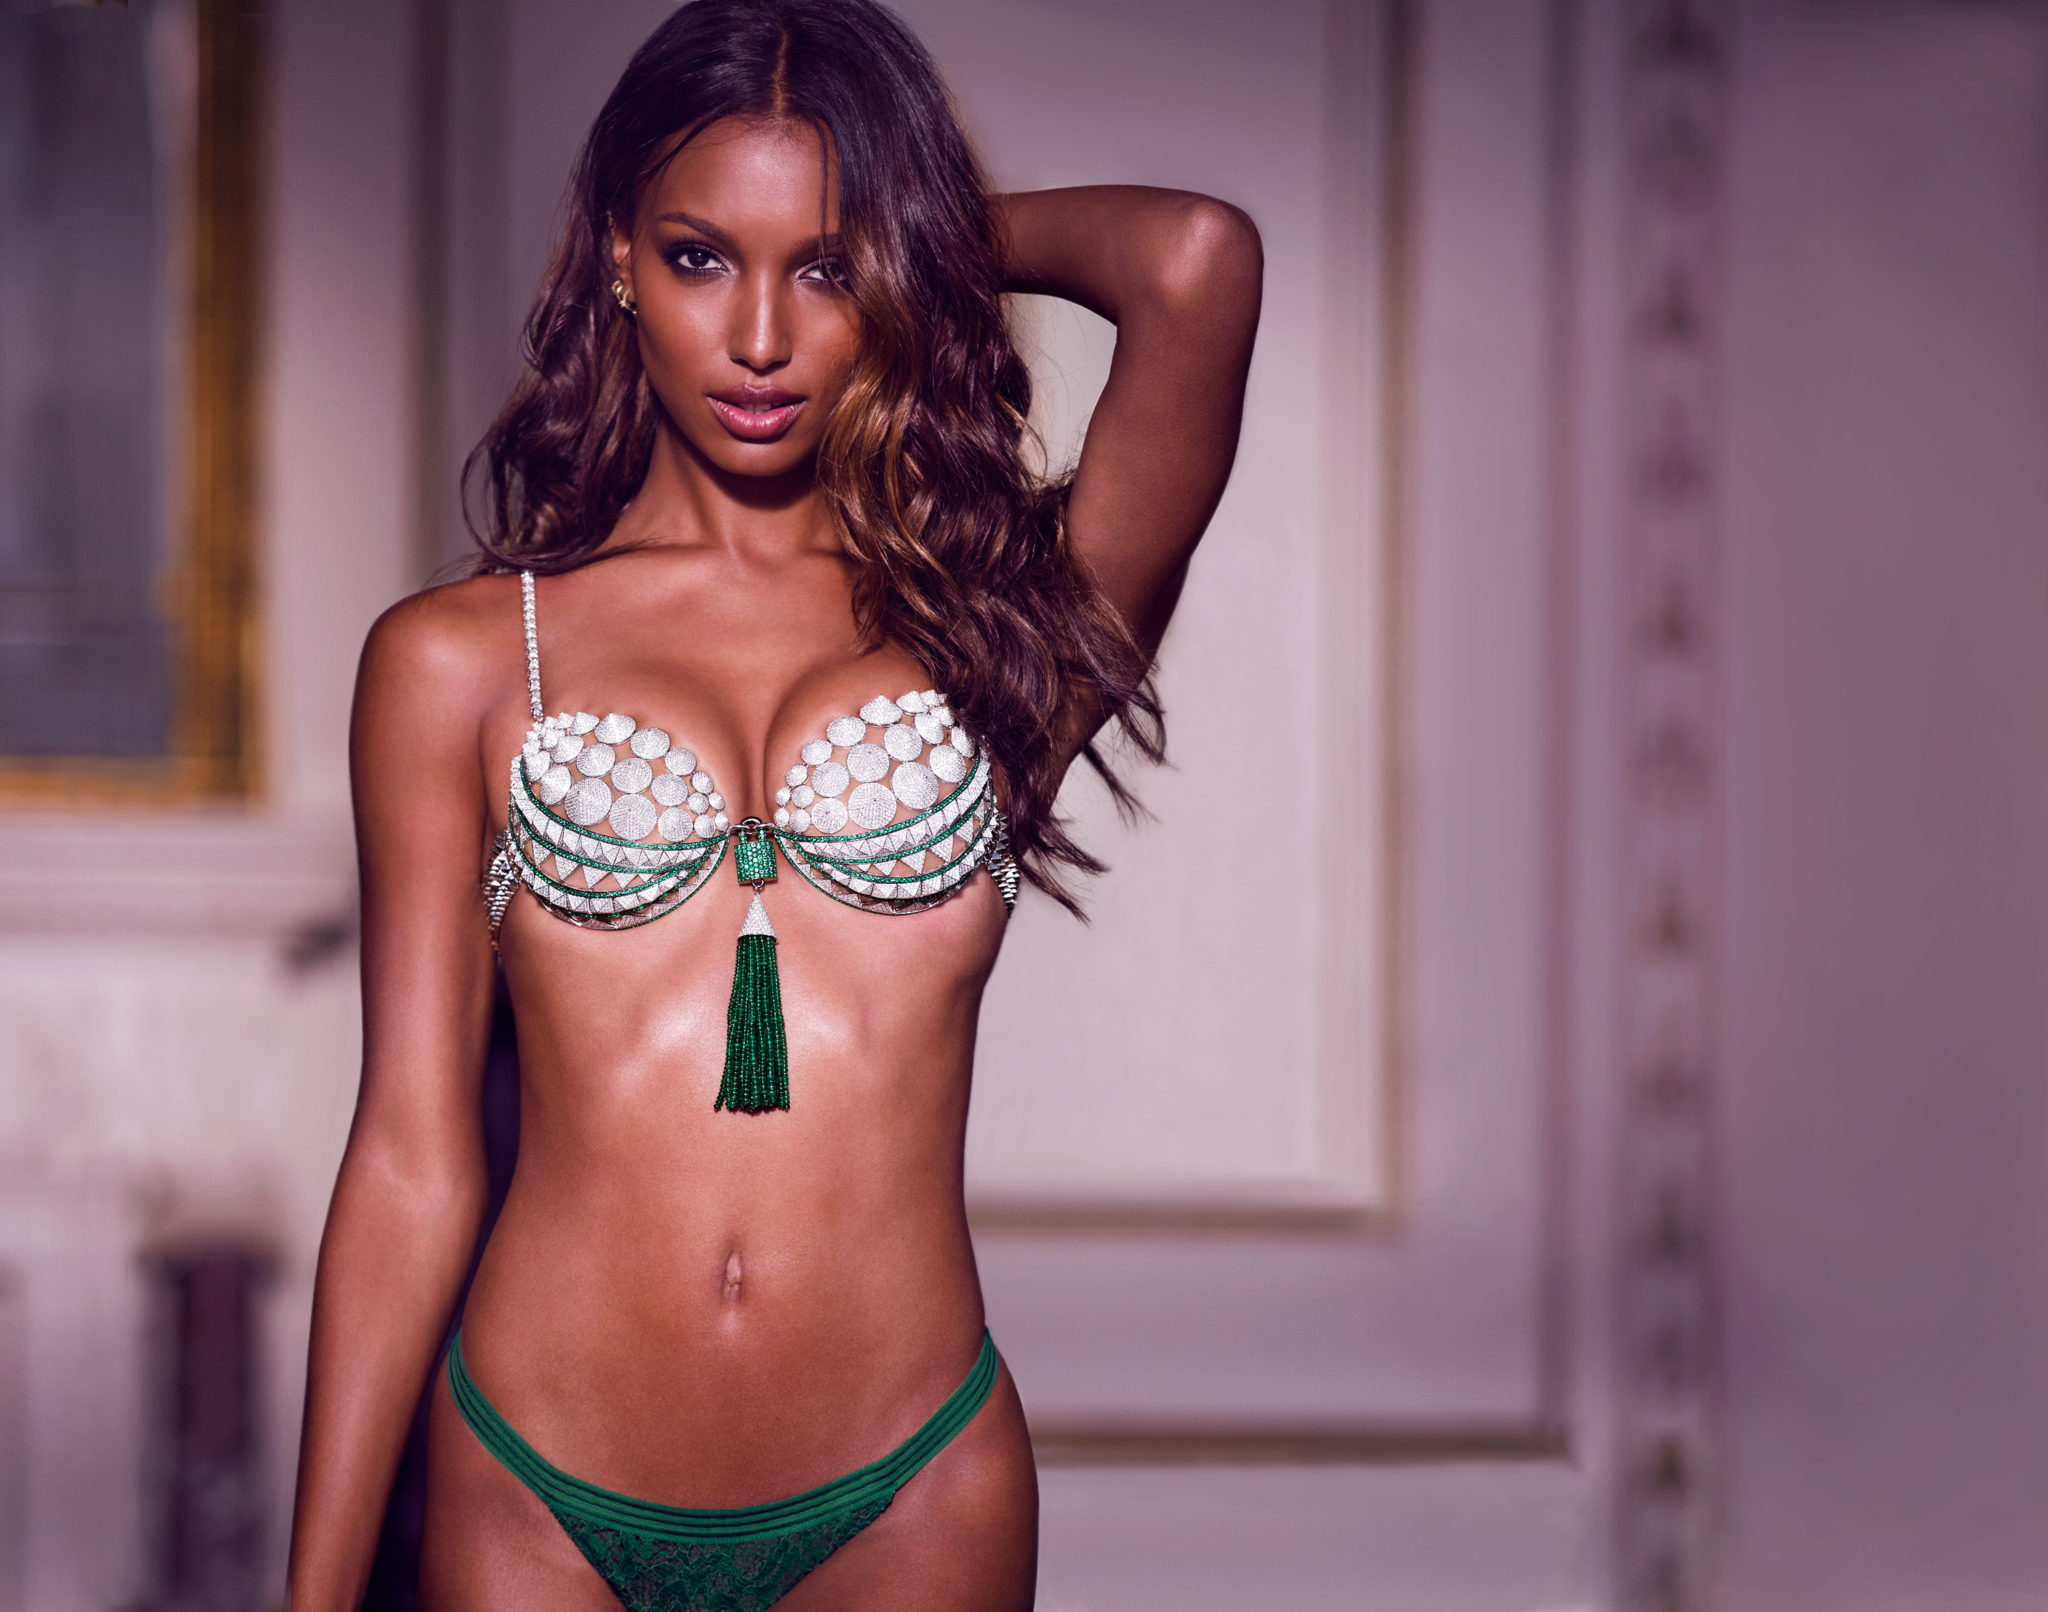 Victoria's Secret model Jasmine Tookes wearing the 2016 Fantasy Br